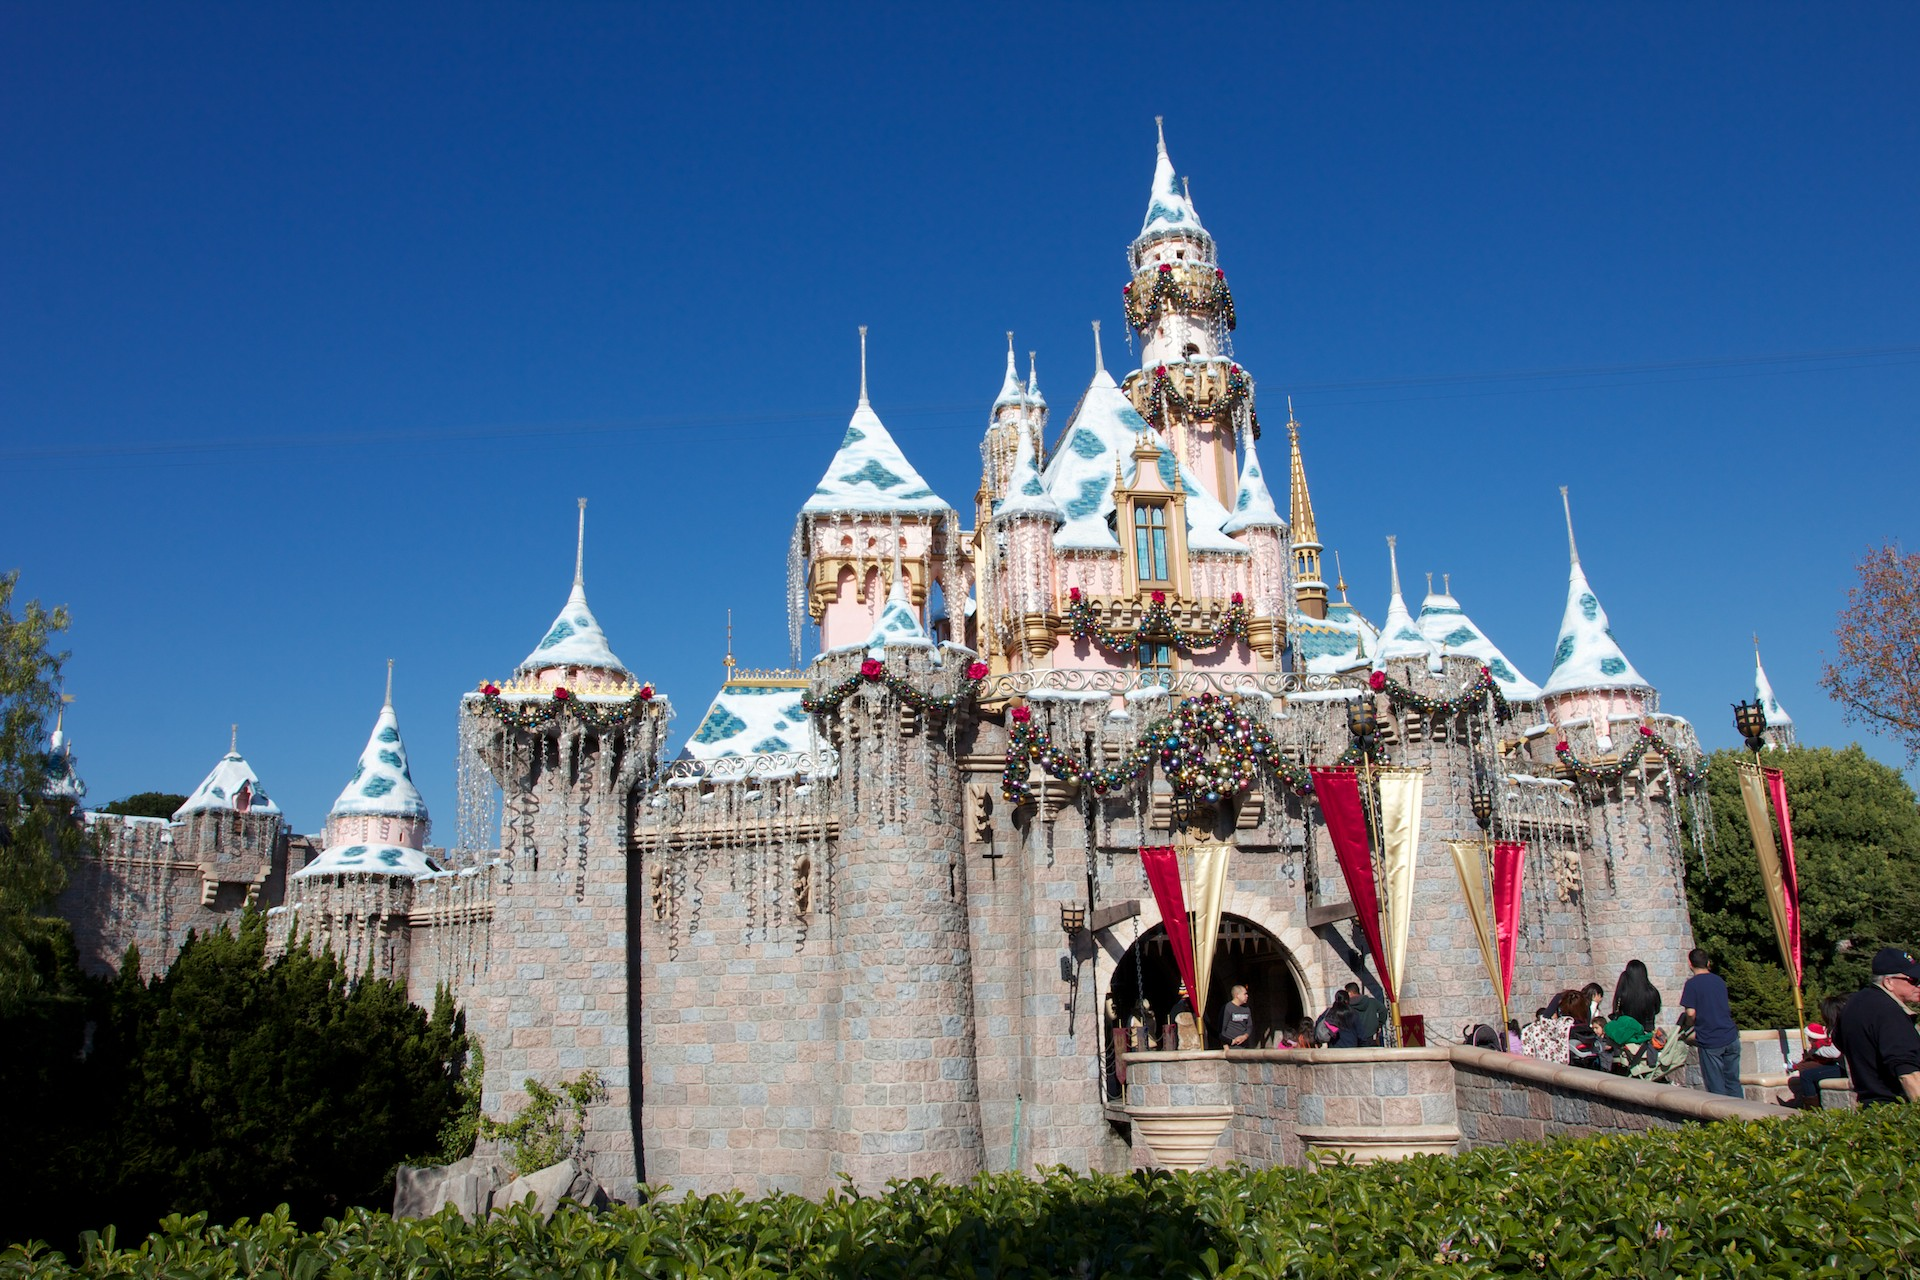 Christmas At Disneyland Sleeping Beauty Castle Desktop Wallpaper